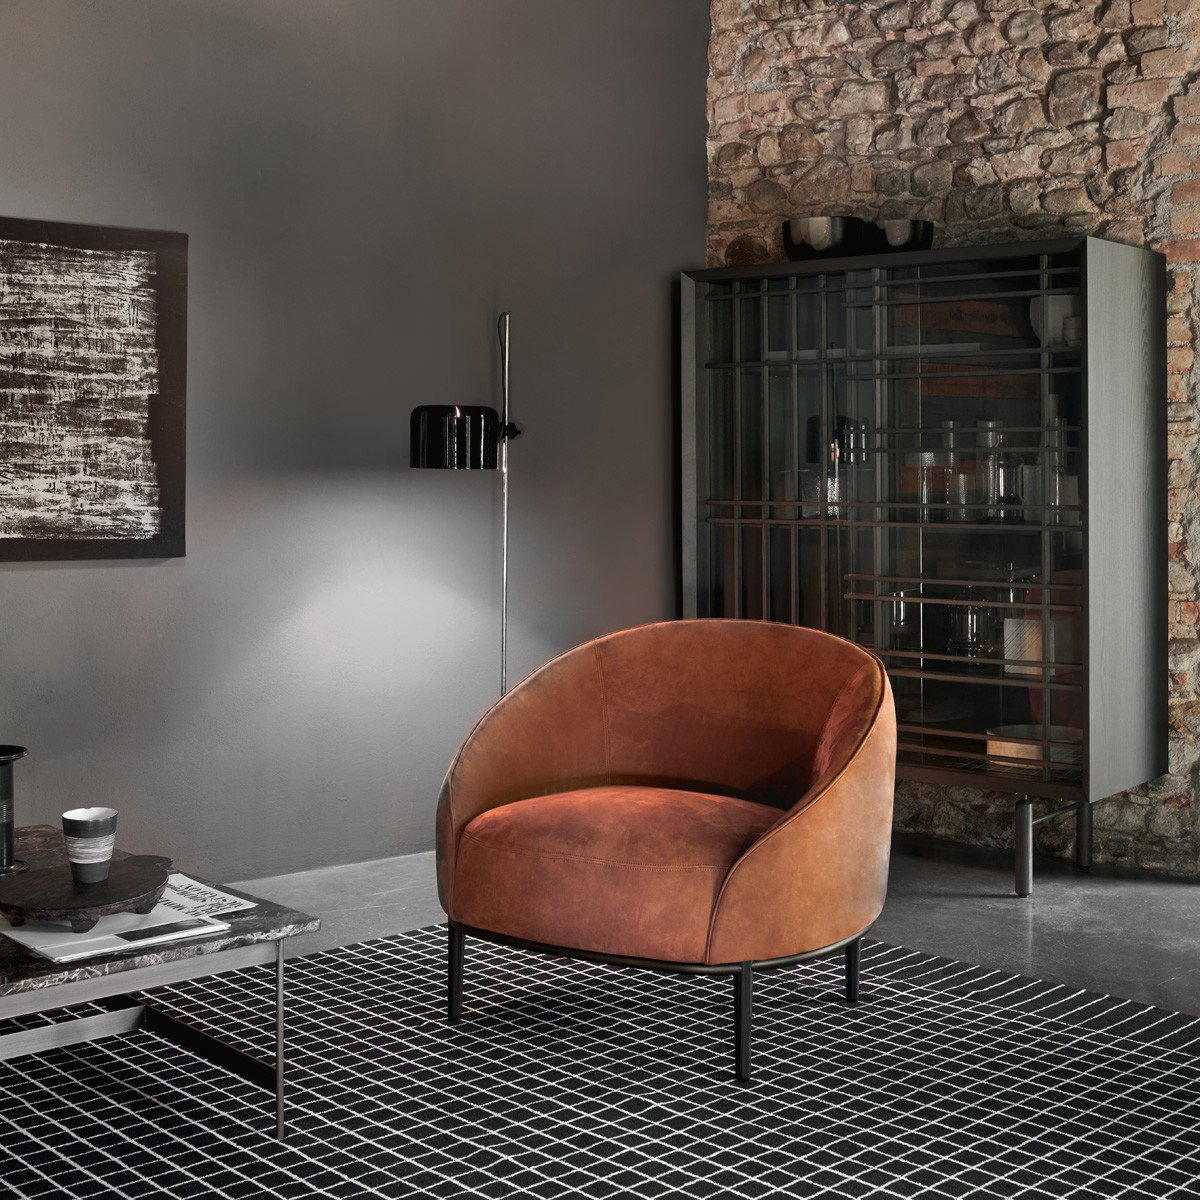 Yoisho Armchair lounge from Potocco, designed by Bernhardt & Vella